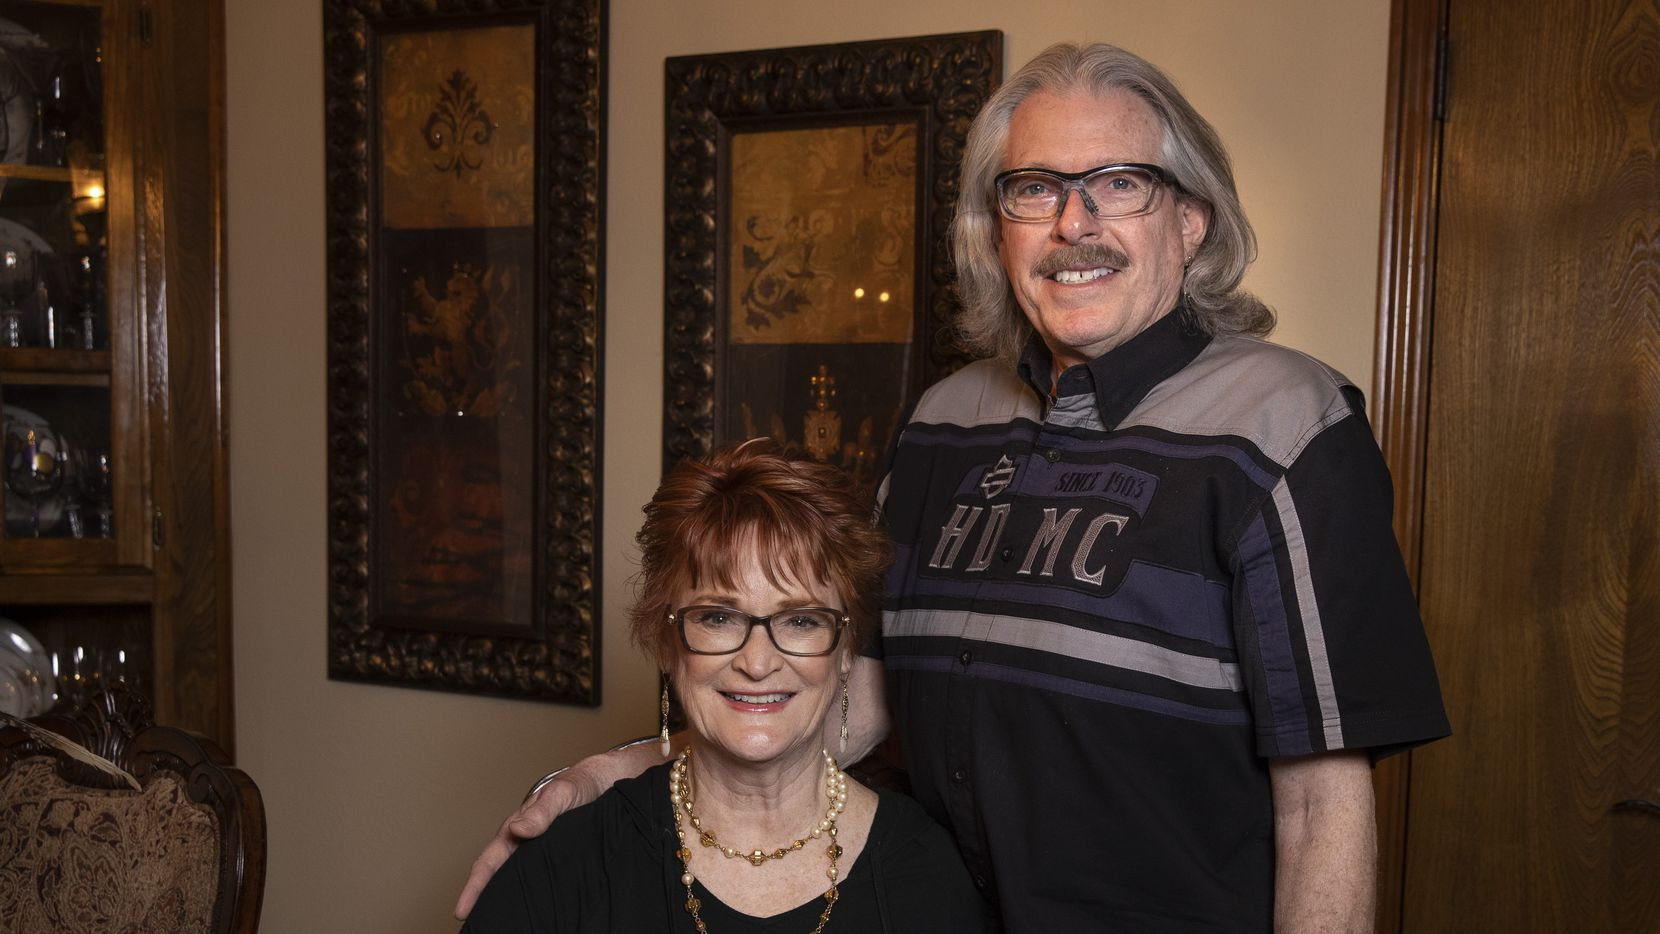 """Anne and Jon Goodman pose for a portrait at their home on Thursday, Feb. 25, 2021, in Fairview, Texas. The couple are both fully vaccinated from COVID-19, and they are looking forward to life post-vaccination. Avid motorcyclists, the pair put a pause on riding during the pandemic. """"We thought even if we got into any small mishap, like even a scrape while riding, we'd be taking someone's spot in the hospital who has COVID,"""" Jon said. """"We decided to put off riding until it got safer."""" (Lynda M. González/The Dallas Morning News)"""